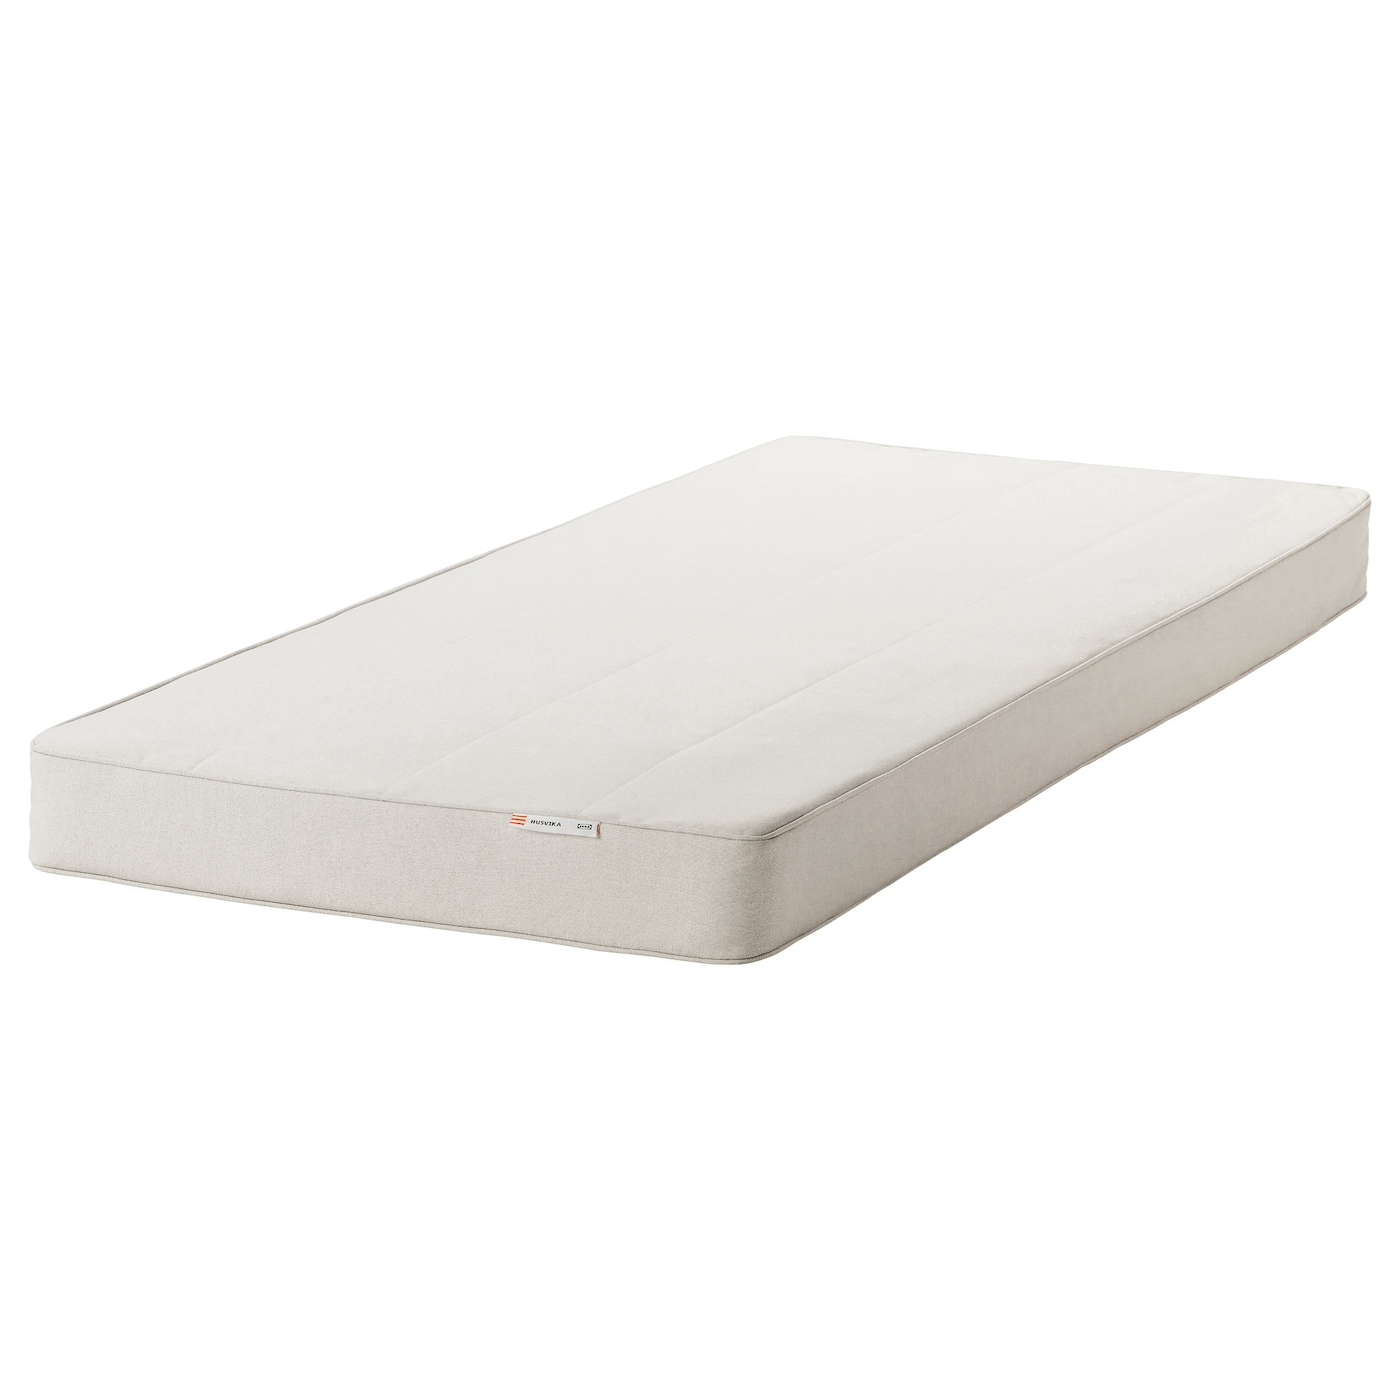 IKEA HUSVIKA sprung mattress Easy to bring home since the mattress is roll packed.